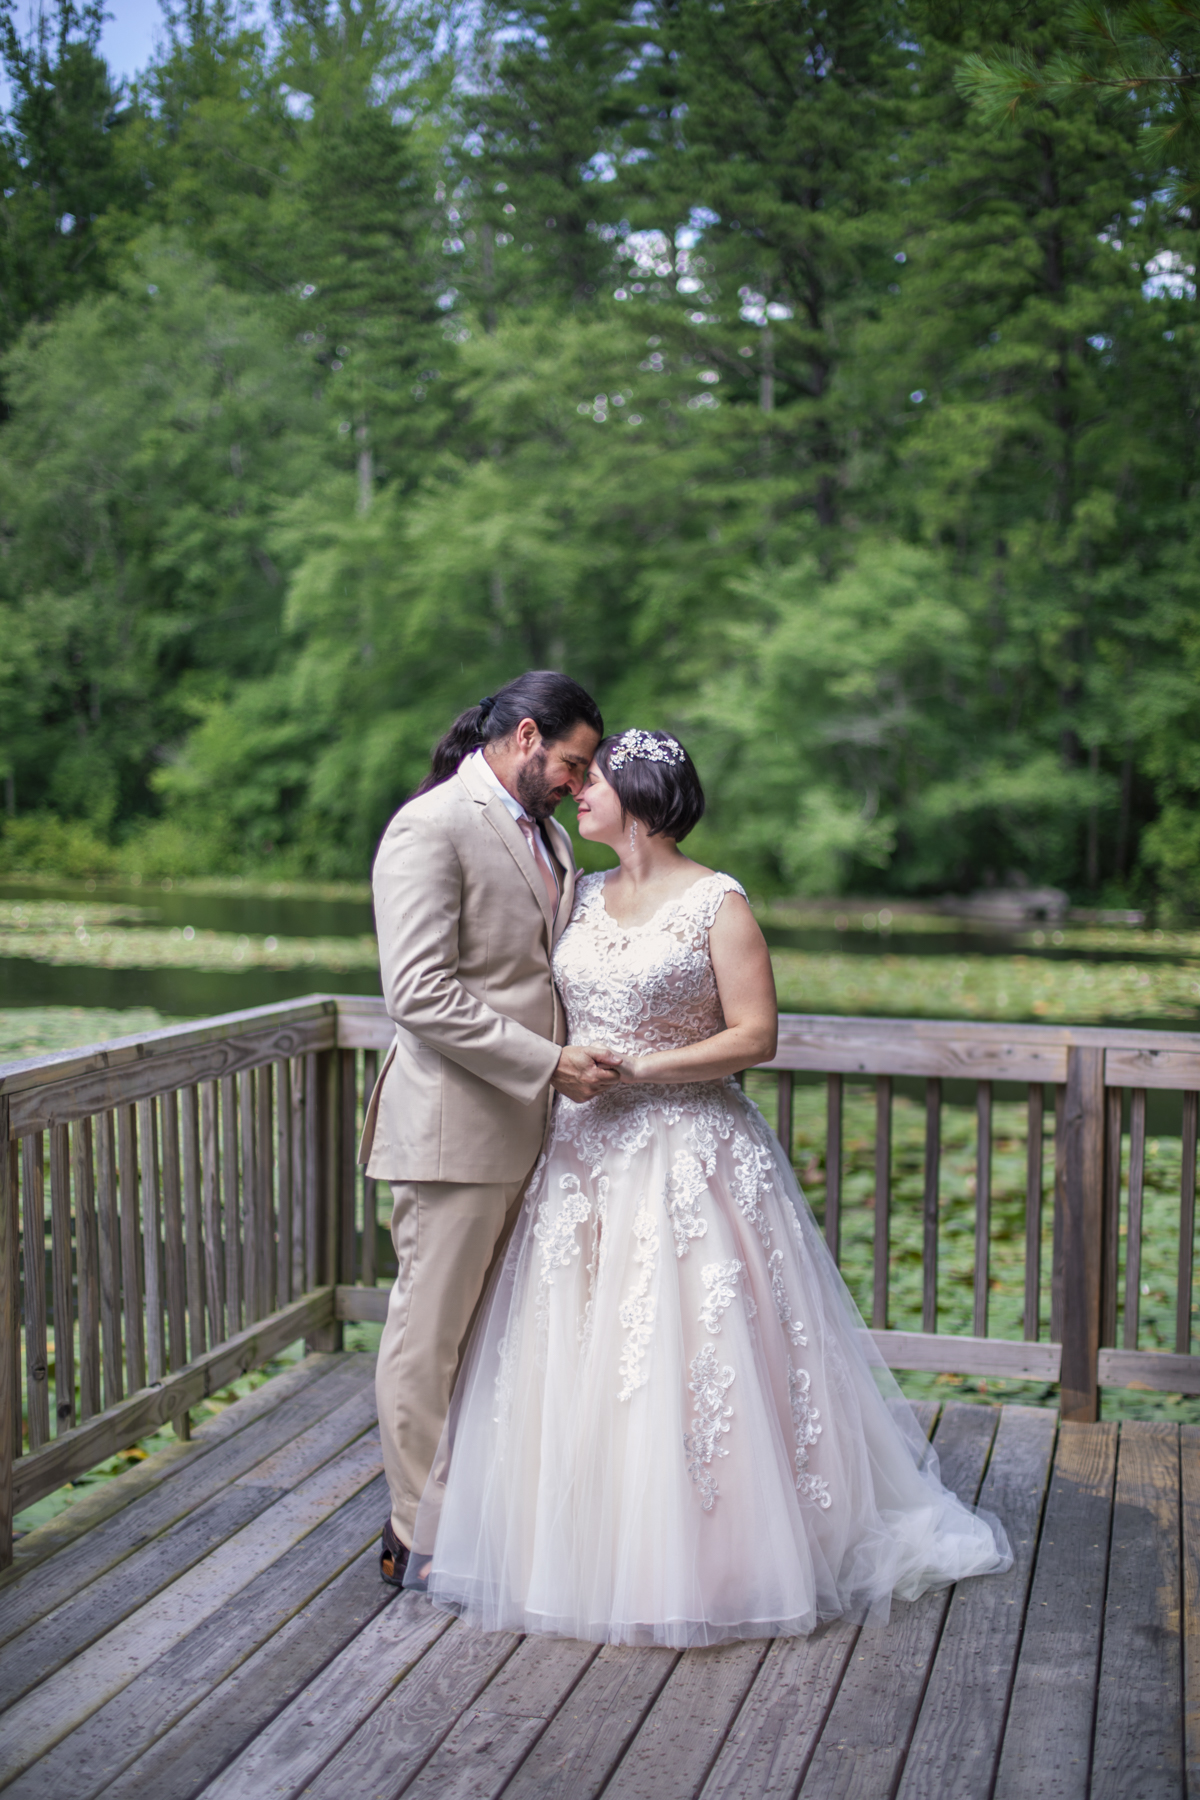 Avyanna and Phoenix Wedding 2019_photos by Studio Misha_BLOG-58.jpg